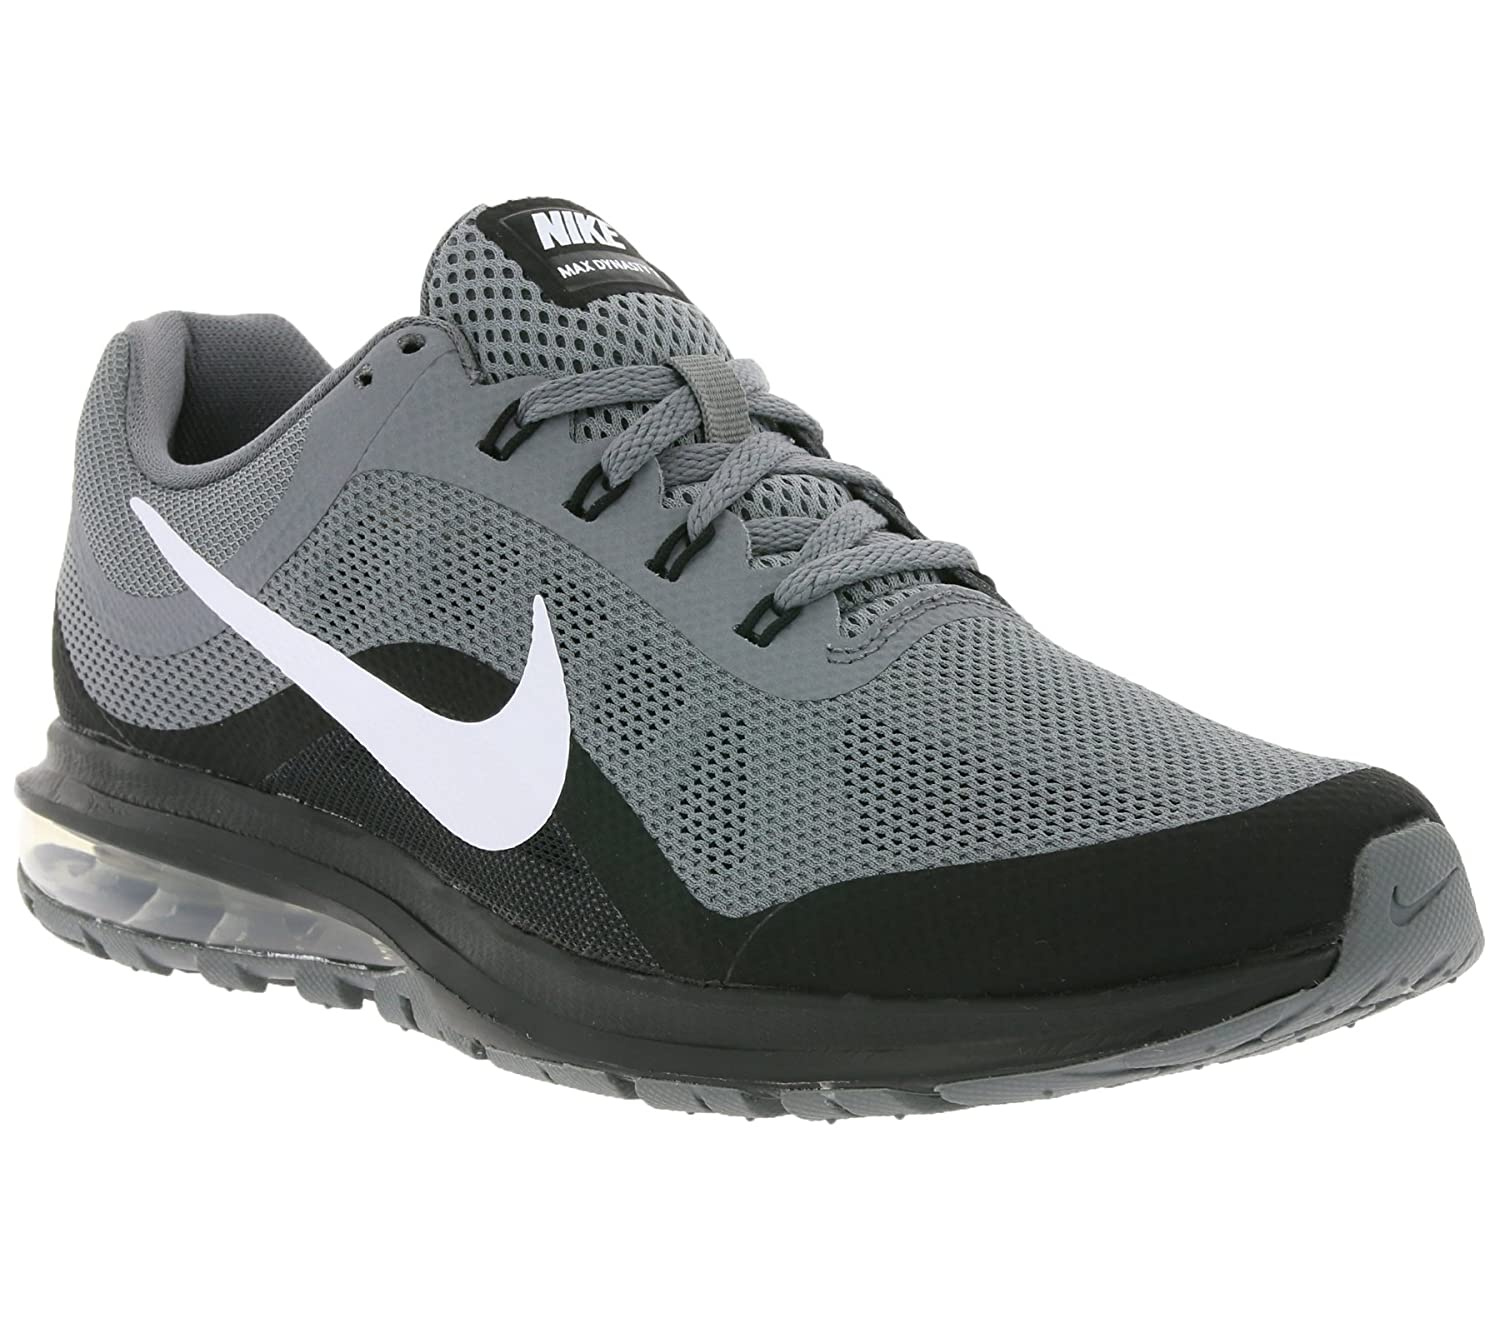 Nike Mens Air Max Dynasty 2 Running Shoes (9.5 M US, Cool GreyWhite Black)